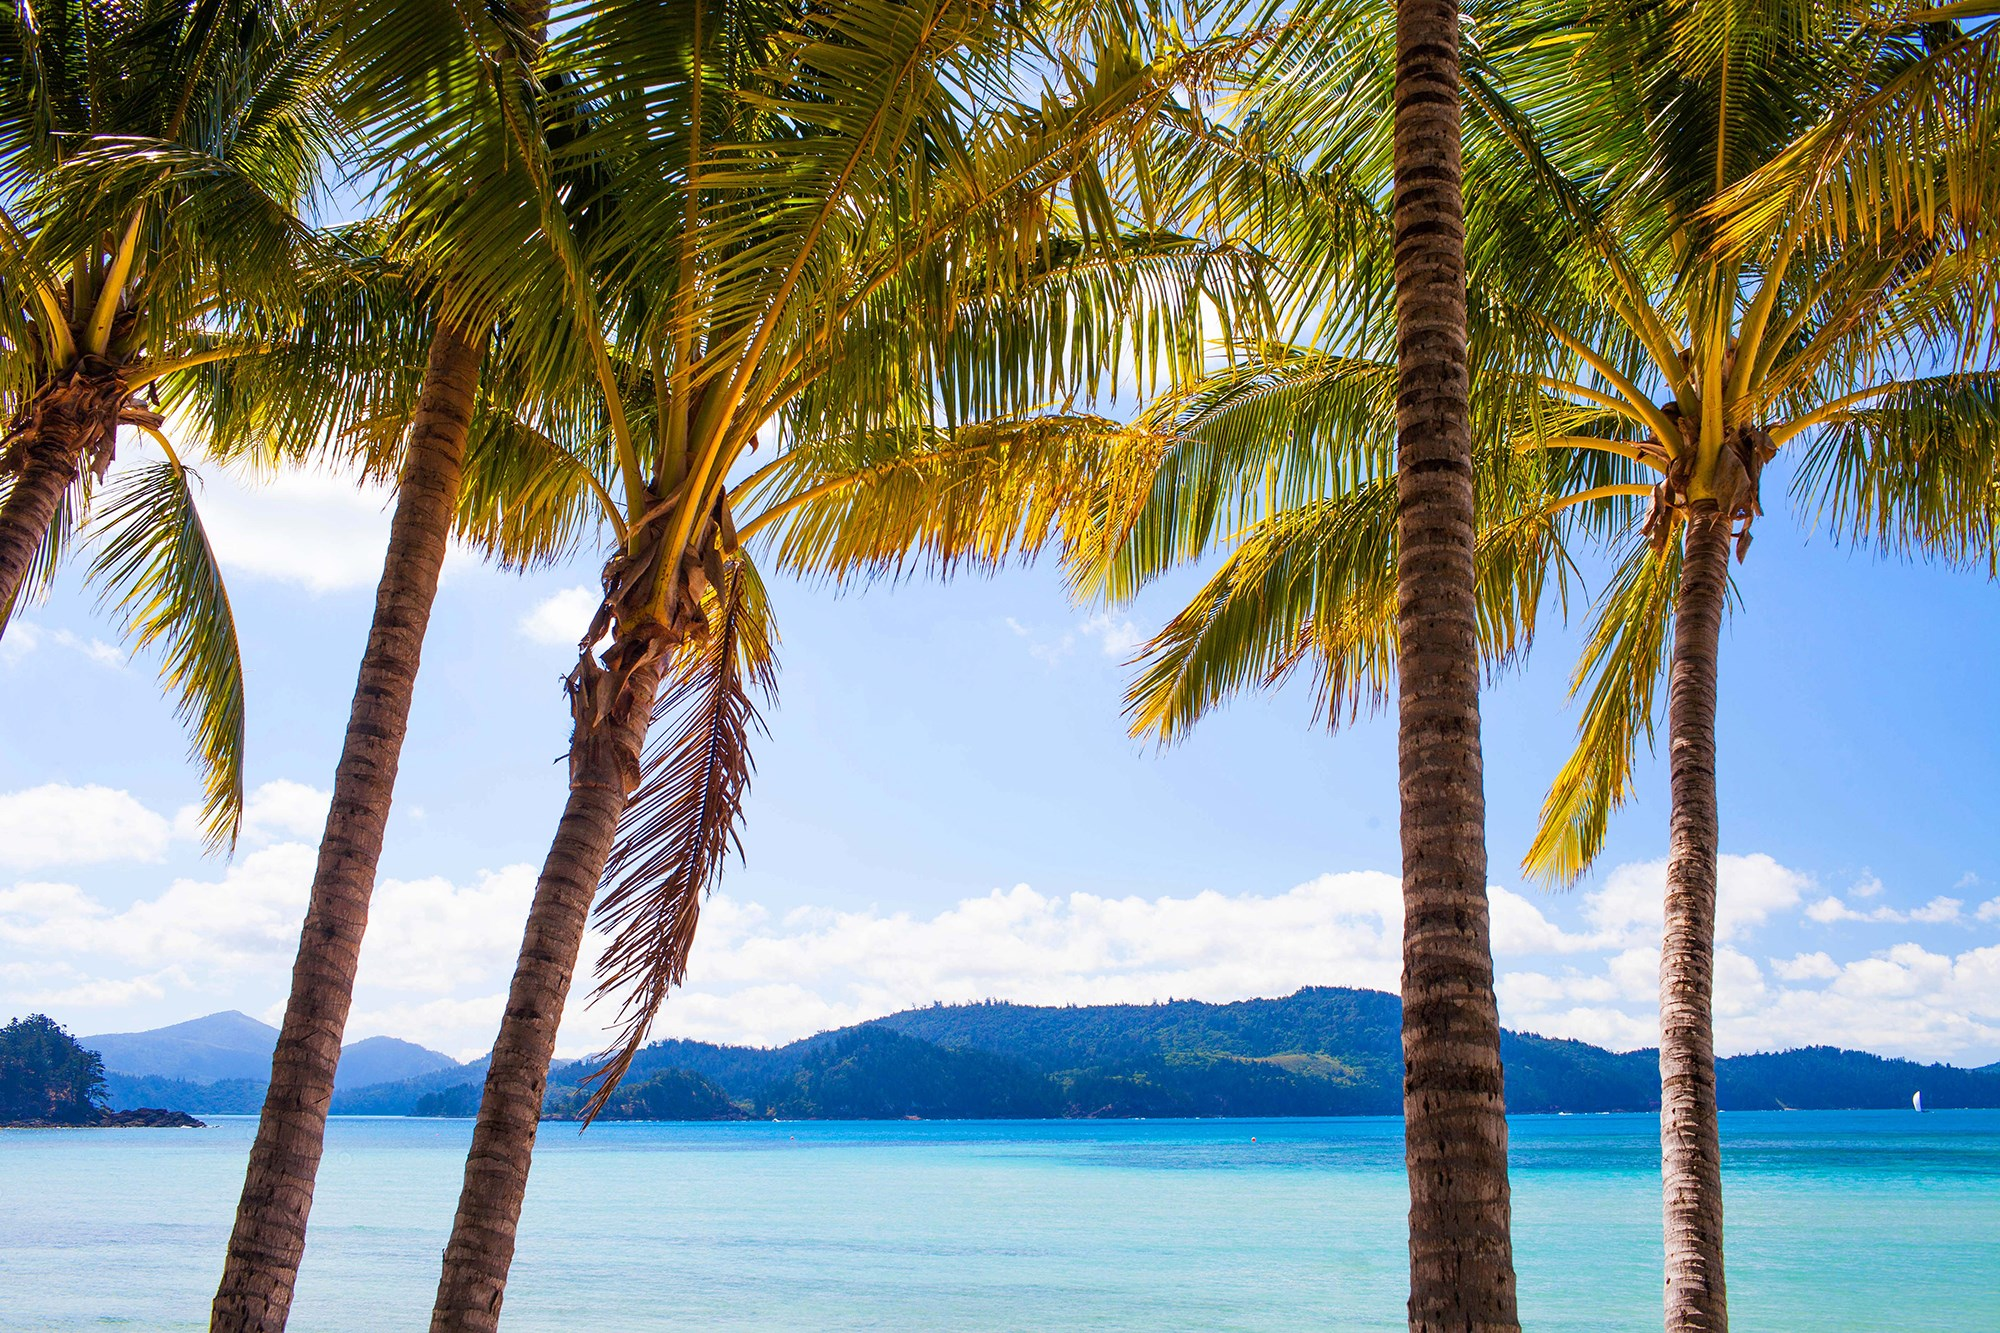 Looking for a Great Barrier Reef resort? Or Queensland resort deals? Hamilton Island offers a perfect getaway.